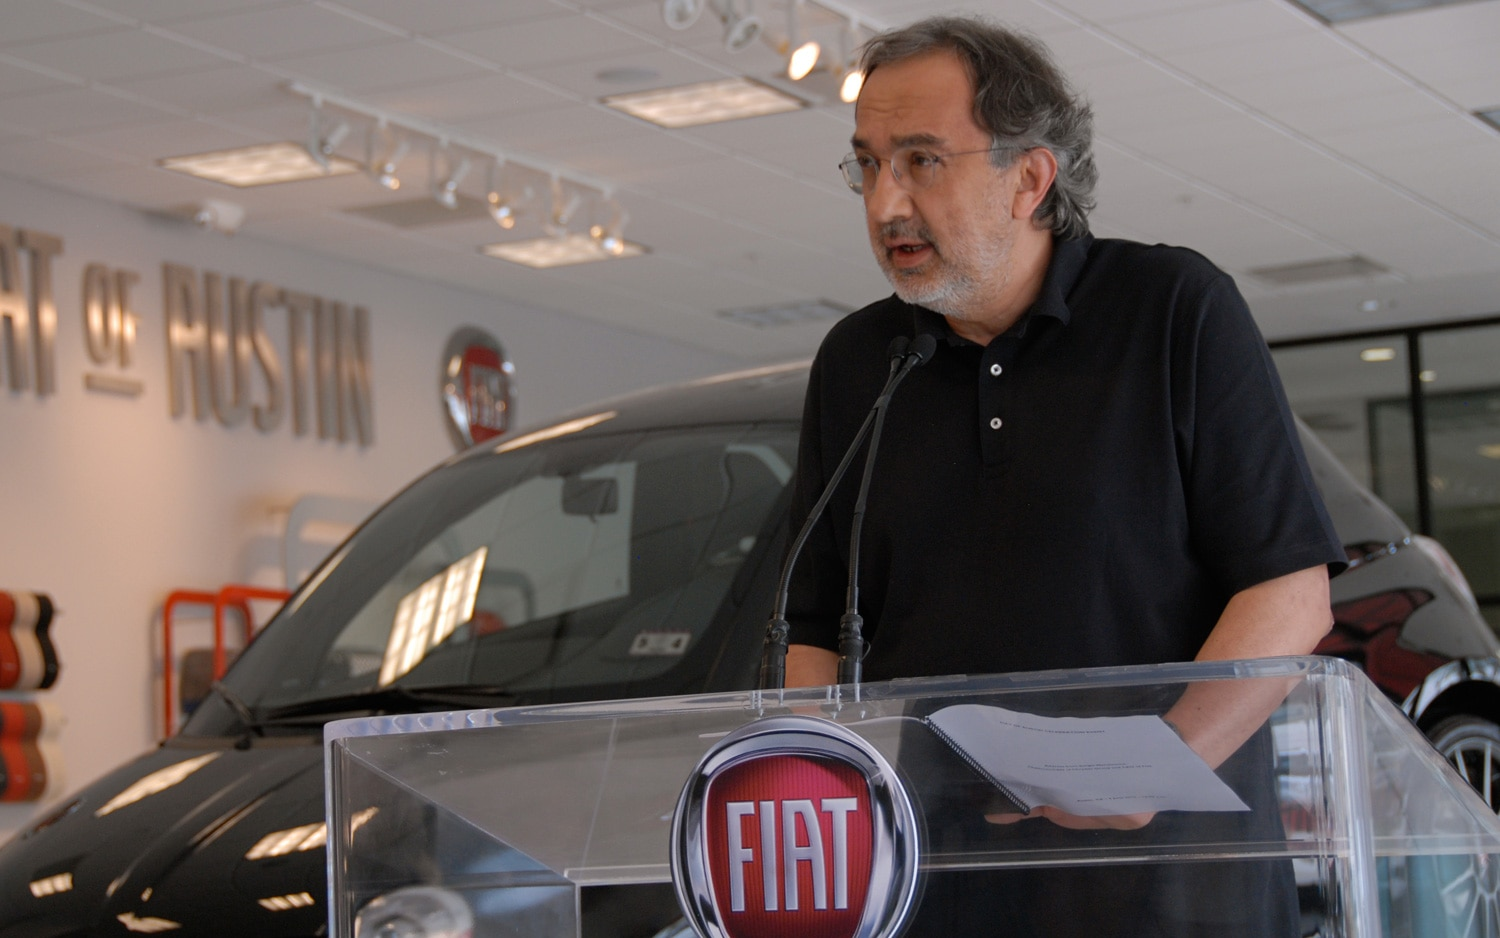 Fiat Chrysler CEO Sergio Marchionne 41